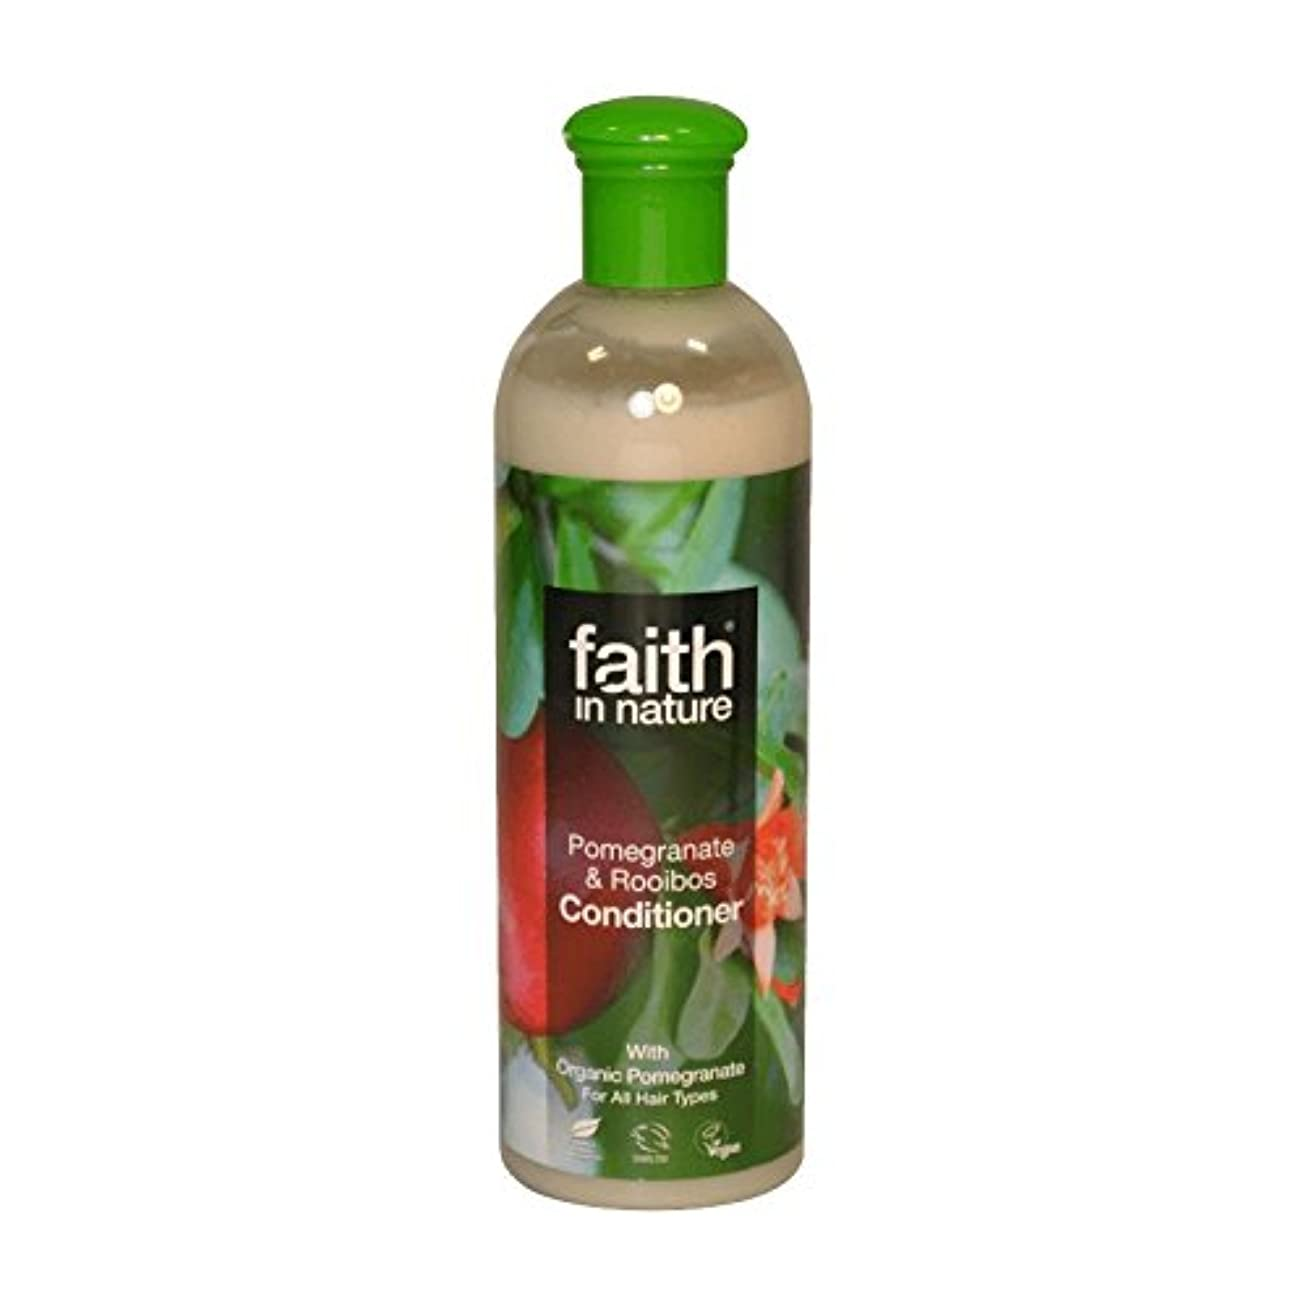 自然ザクロ&Roobiosコンディショナー400ミリリットルの信仰 - Faith in Nature Pomegranate & Roobios Conditioner 400ml (Faith in Nature)...